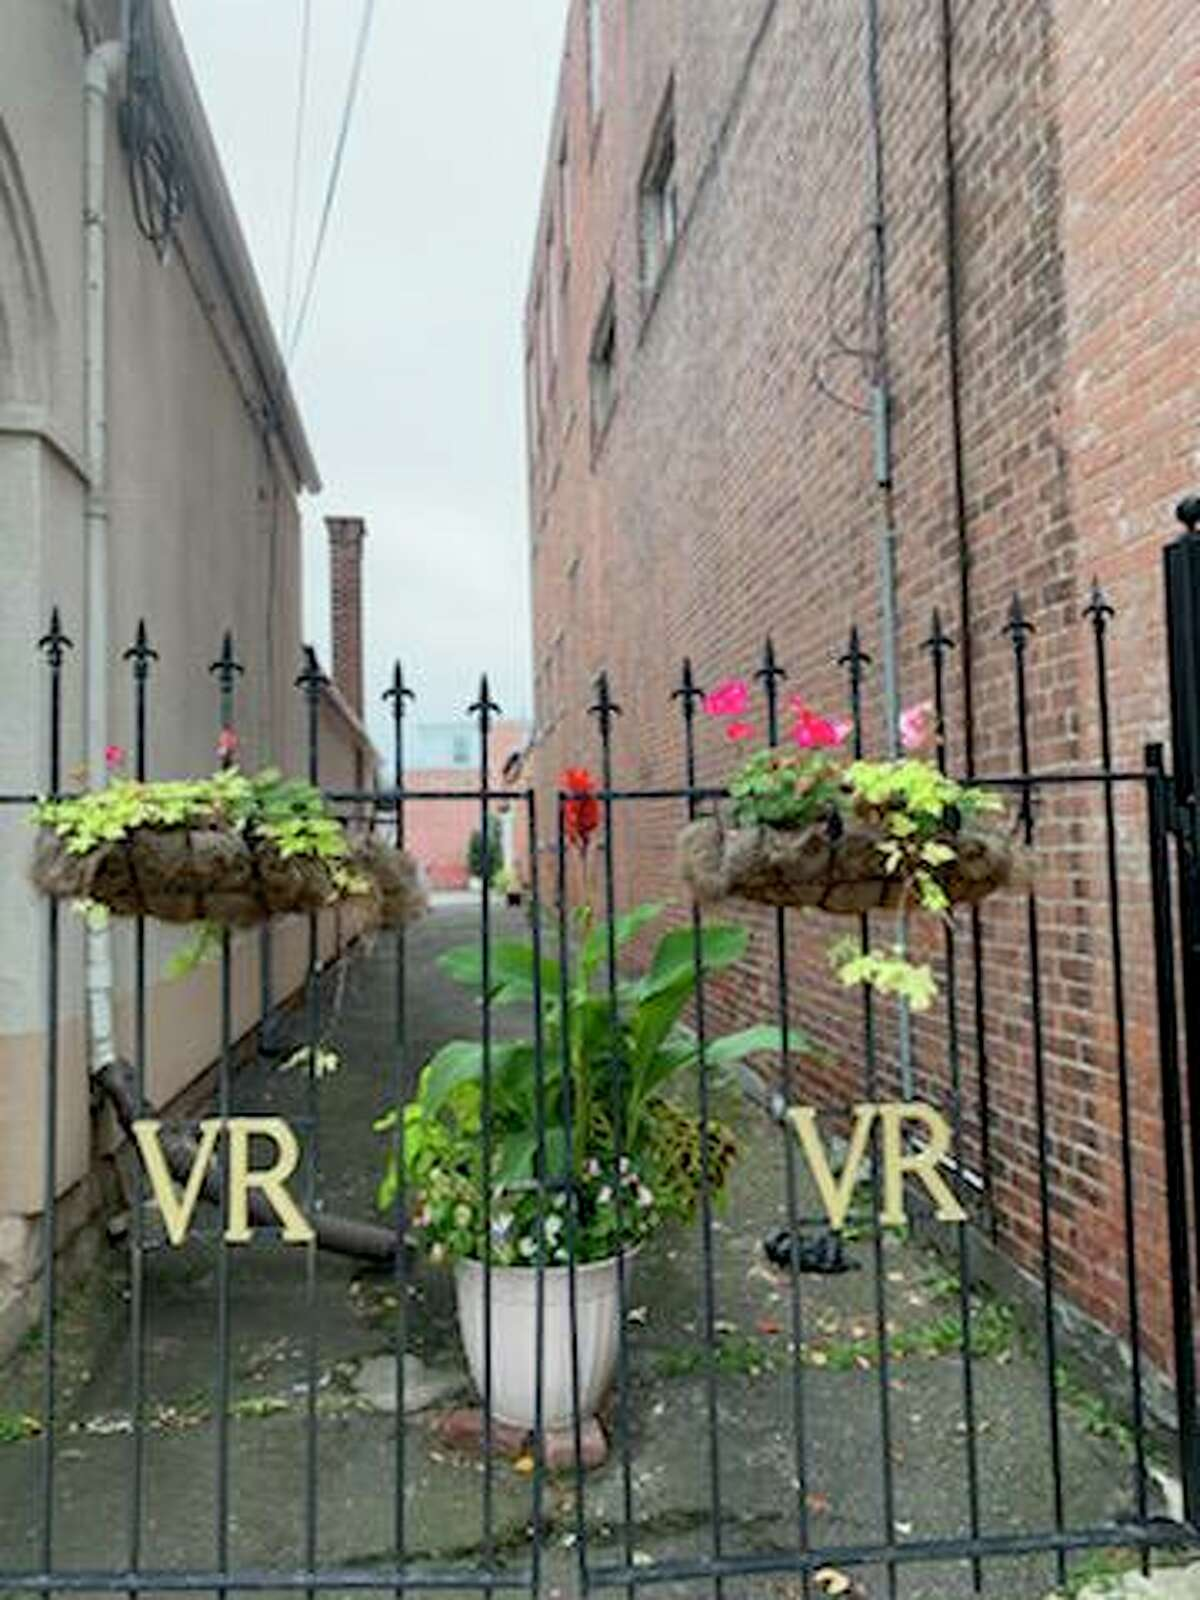 An alley near the Venetian Restaurant on East Main Street, which Blue Haus Group founder Tim Moore believes popup events or public art would work well and encourage people to linger.